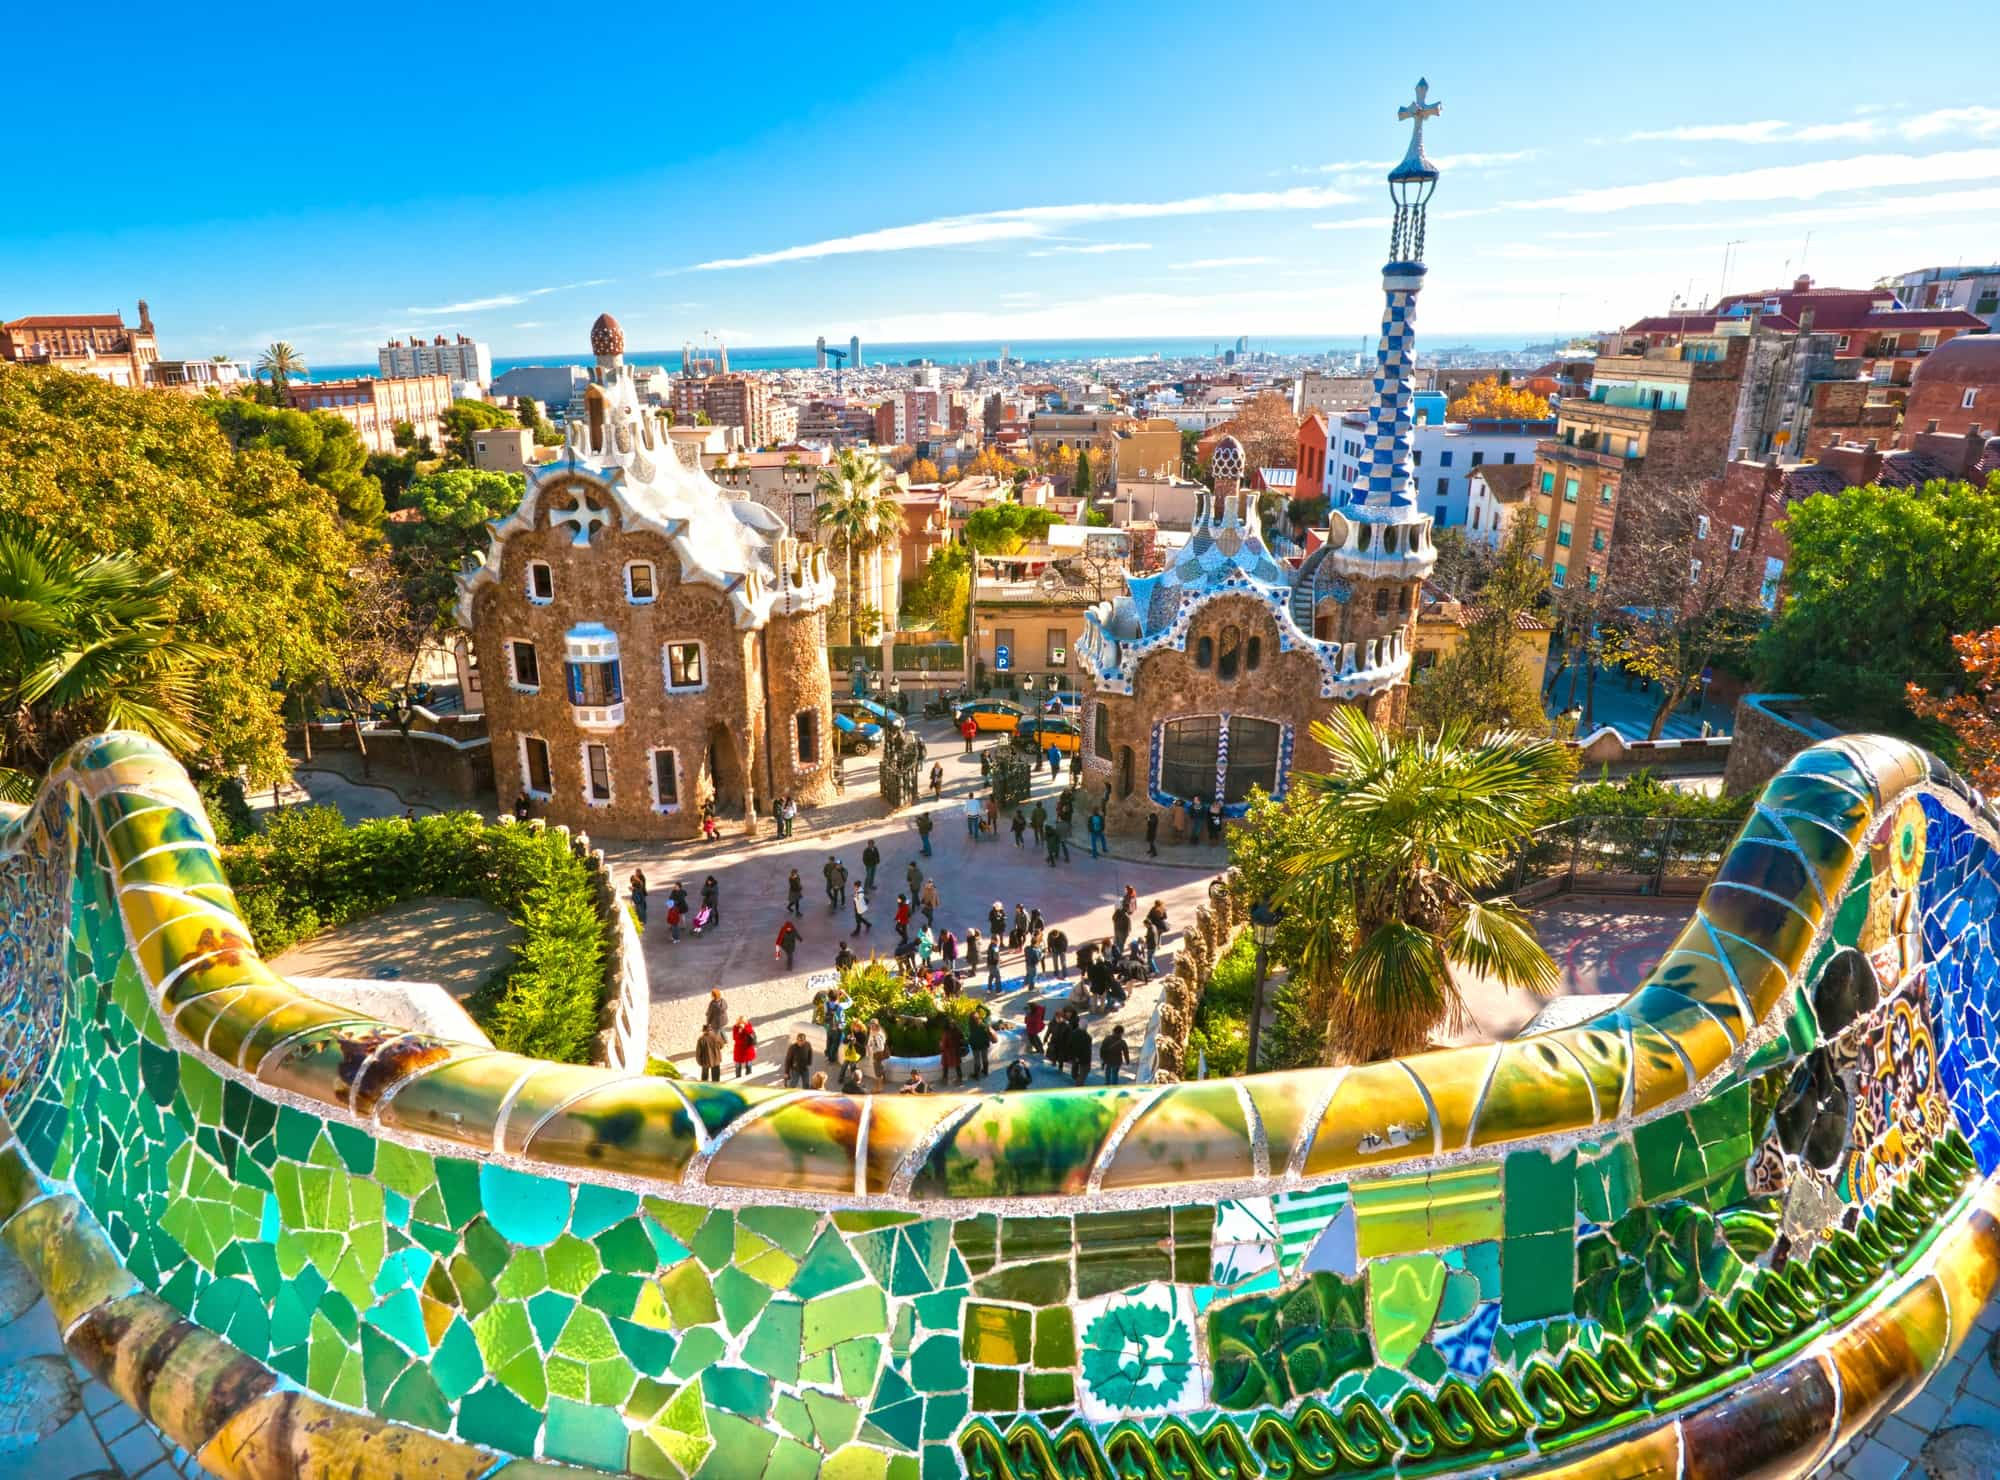 Park Guell's unique architecture in Barcelona with kids